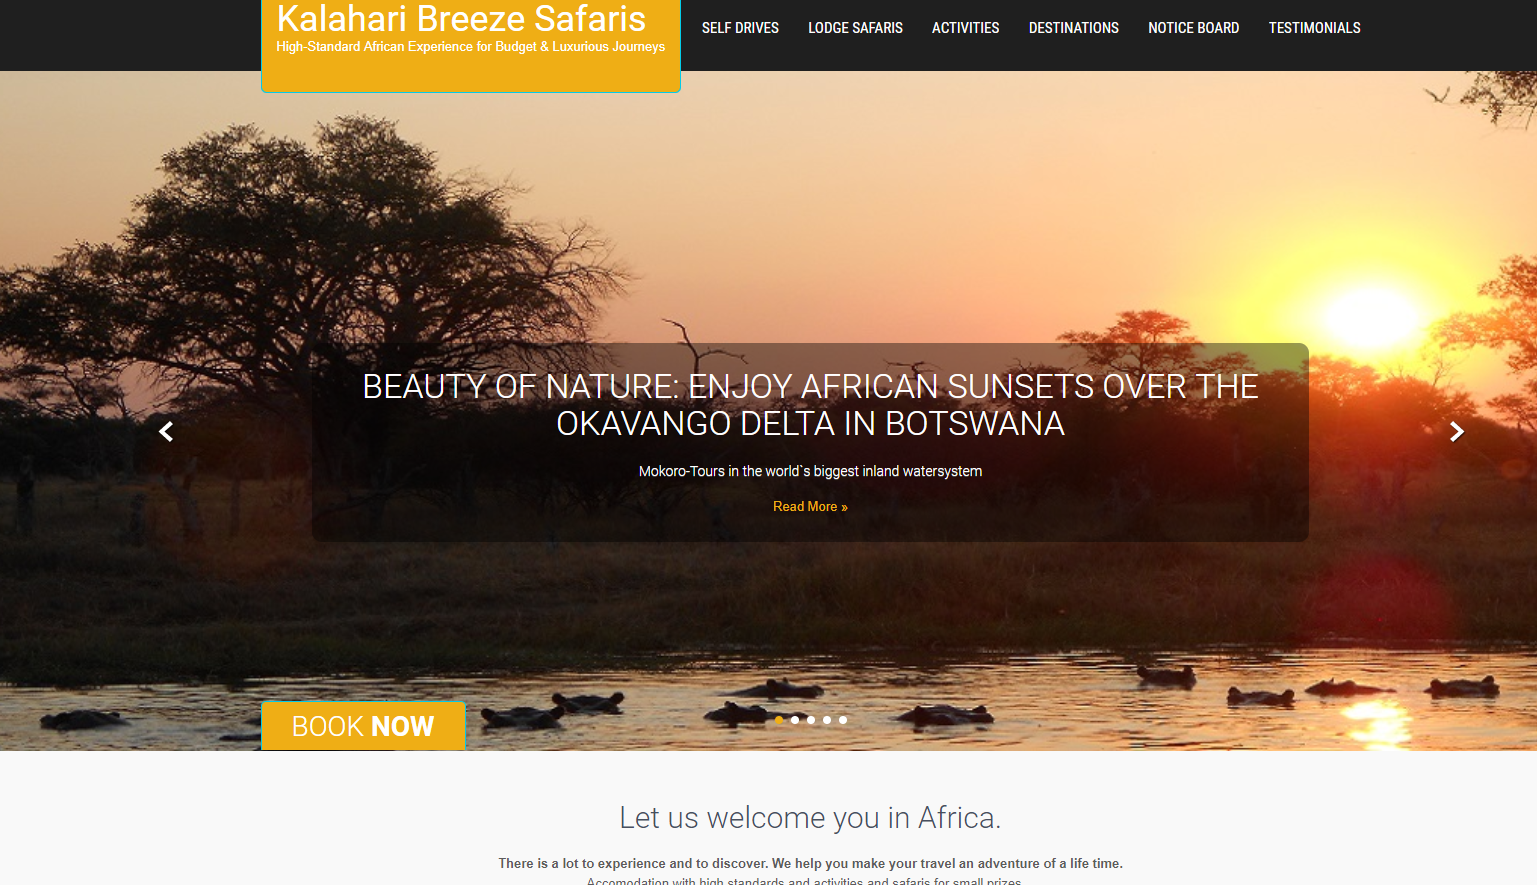 Web Design Kalahari Breeze Safaris